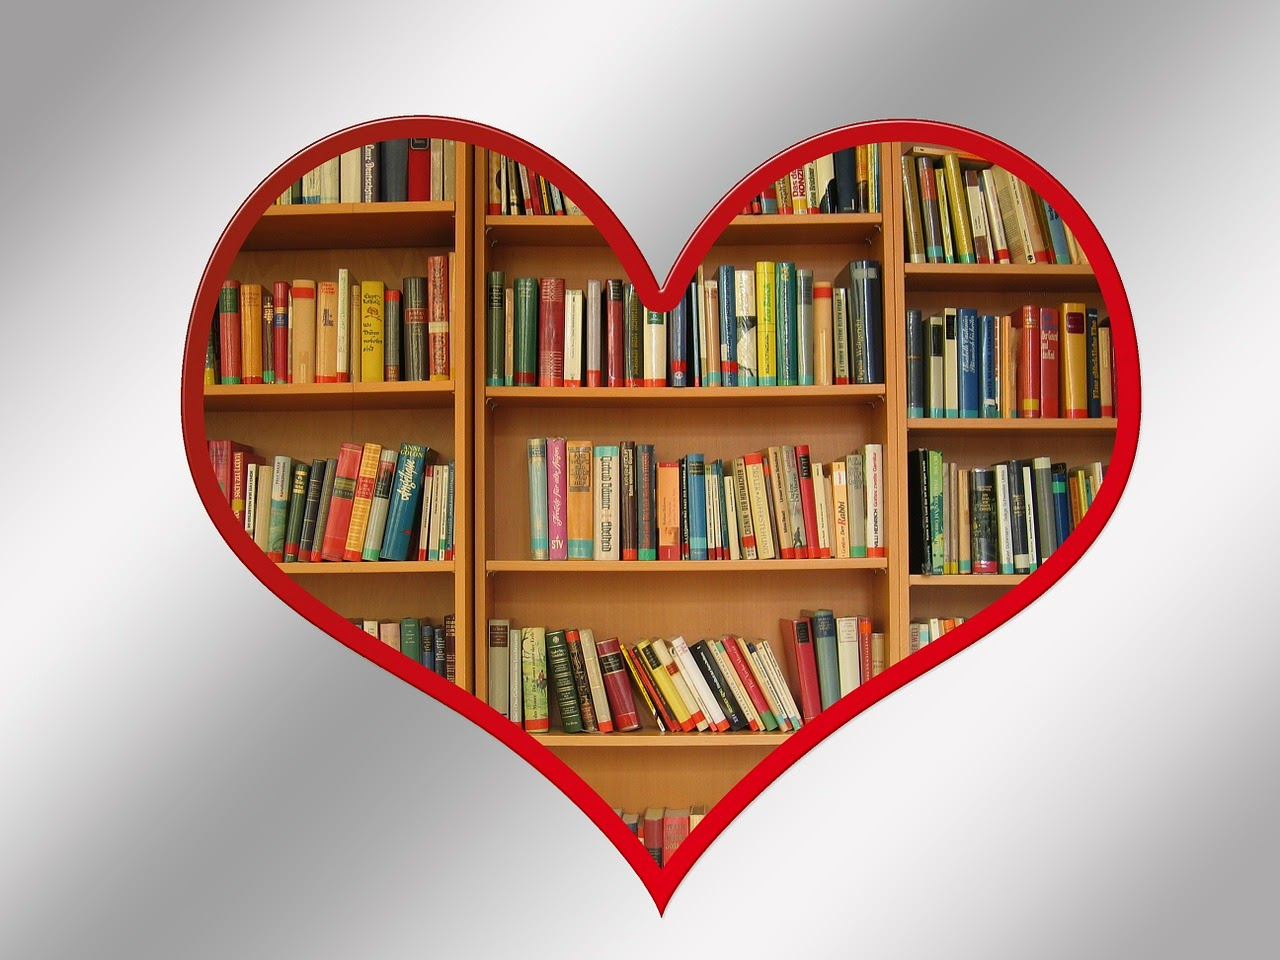 Image of a heart with books inside.  Image Source: http://pixabay.com/p-112117/?no_redirect